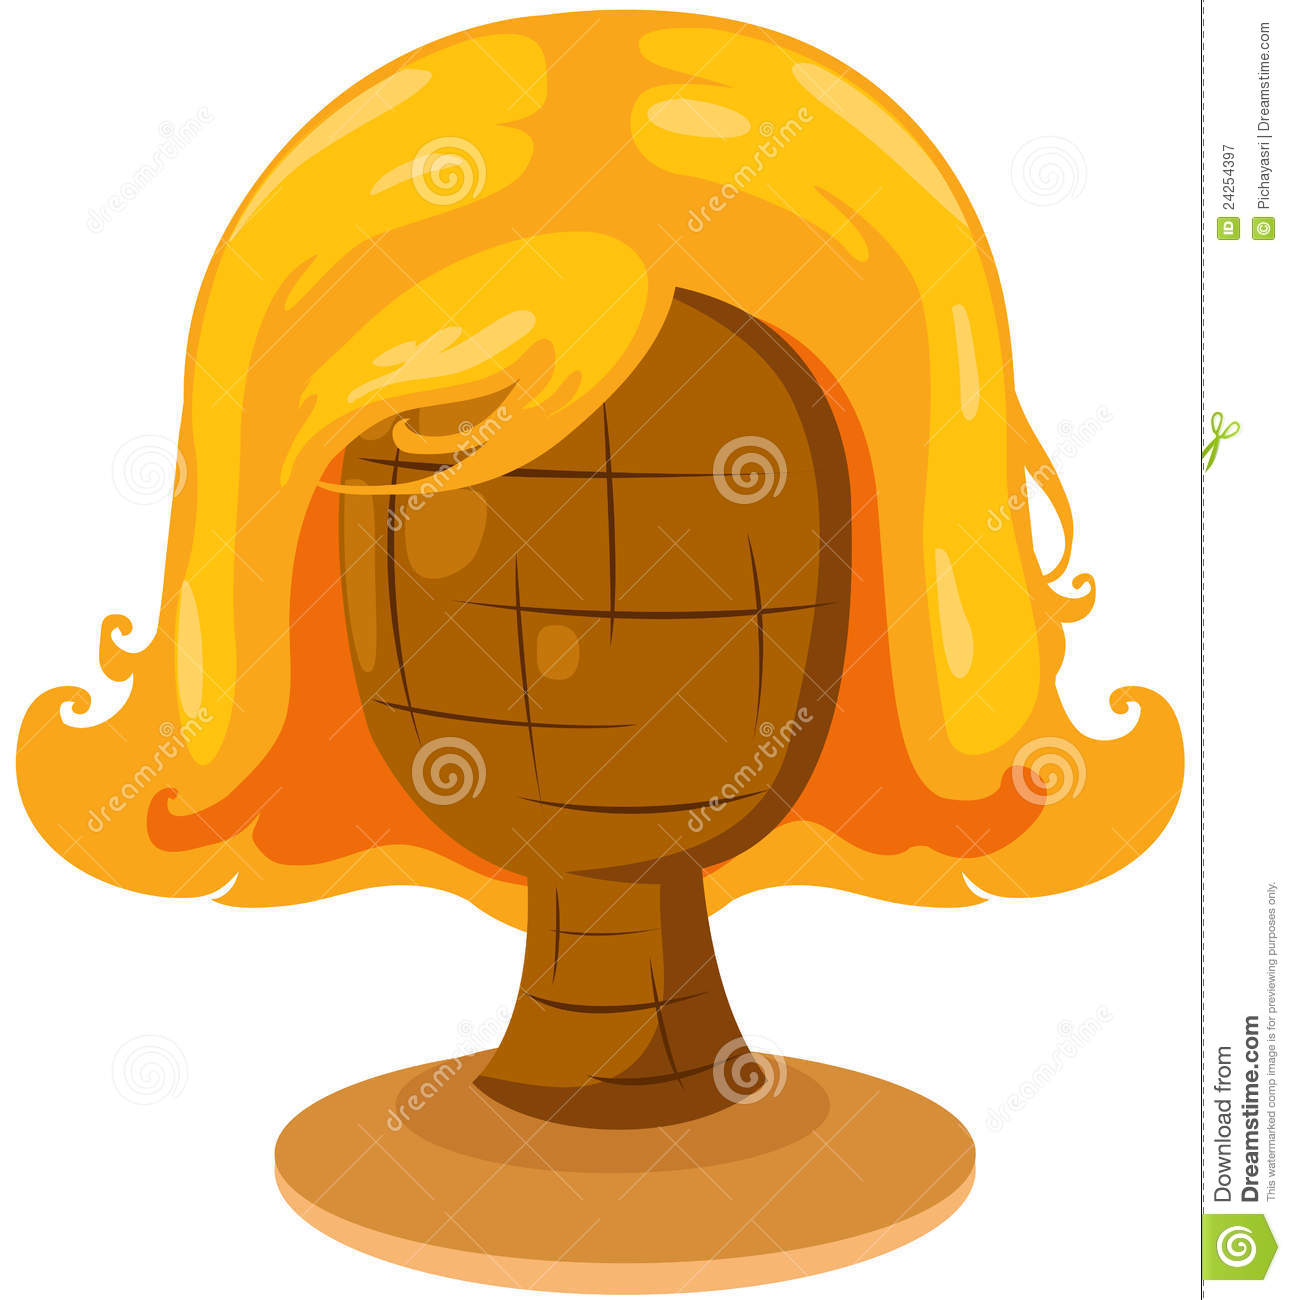 Blonde Wig On Mannequin Head Royalty Free Stock Photography - Image ...